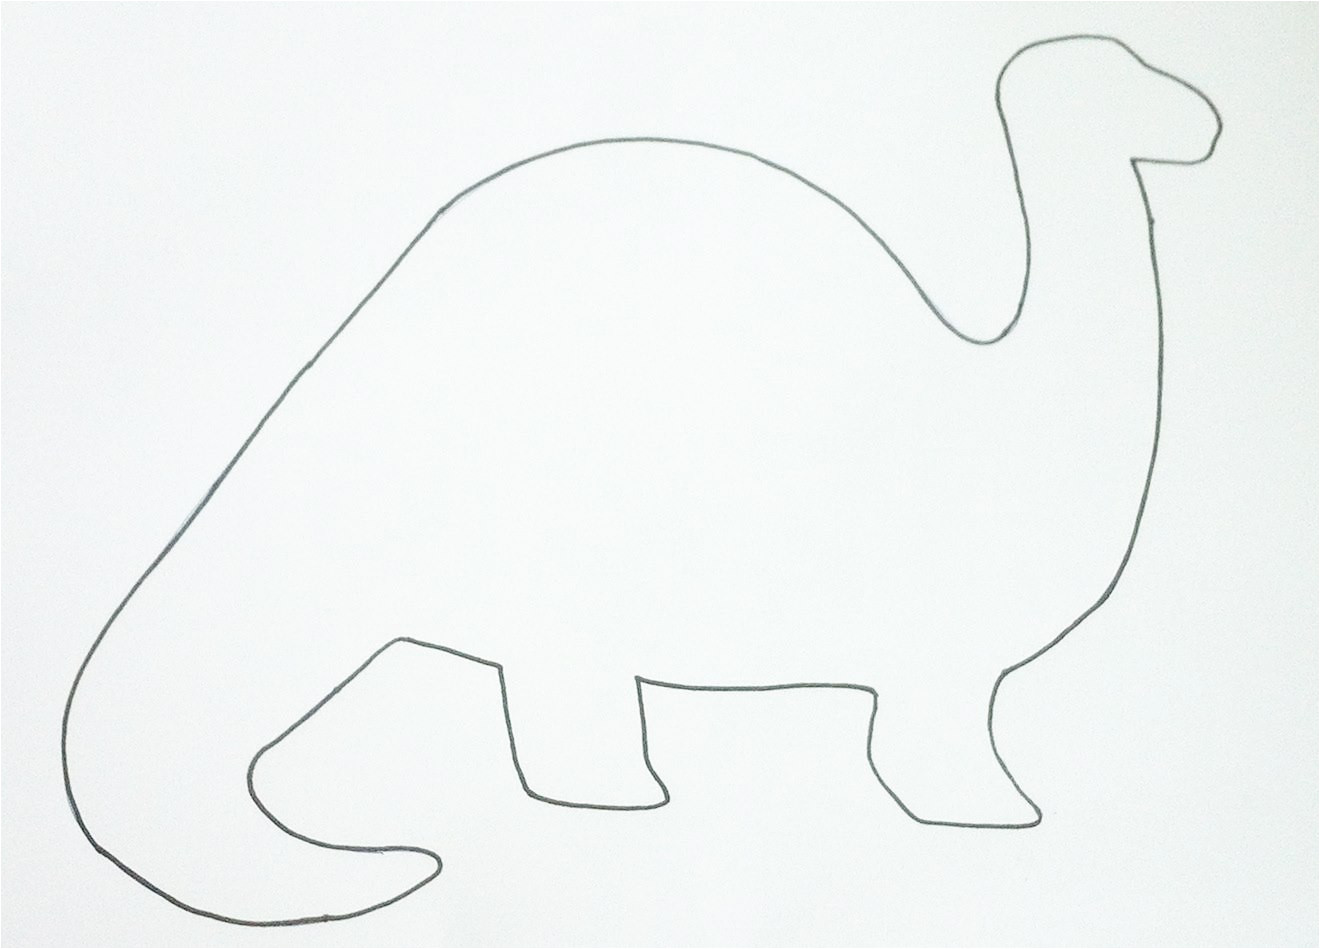 Dinosaur Templates to Print 5 Best Images Of Dinosaur Template Printable Dinosaur